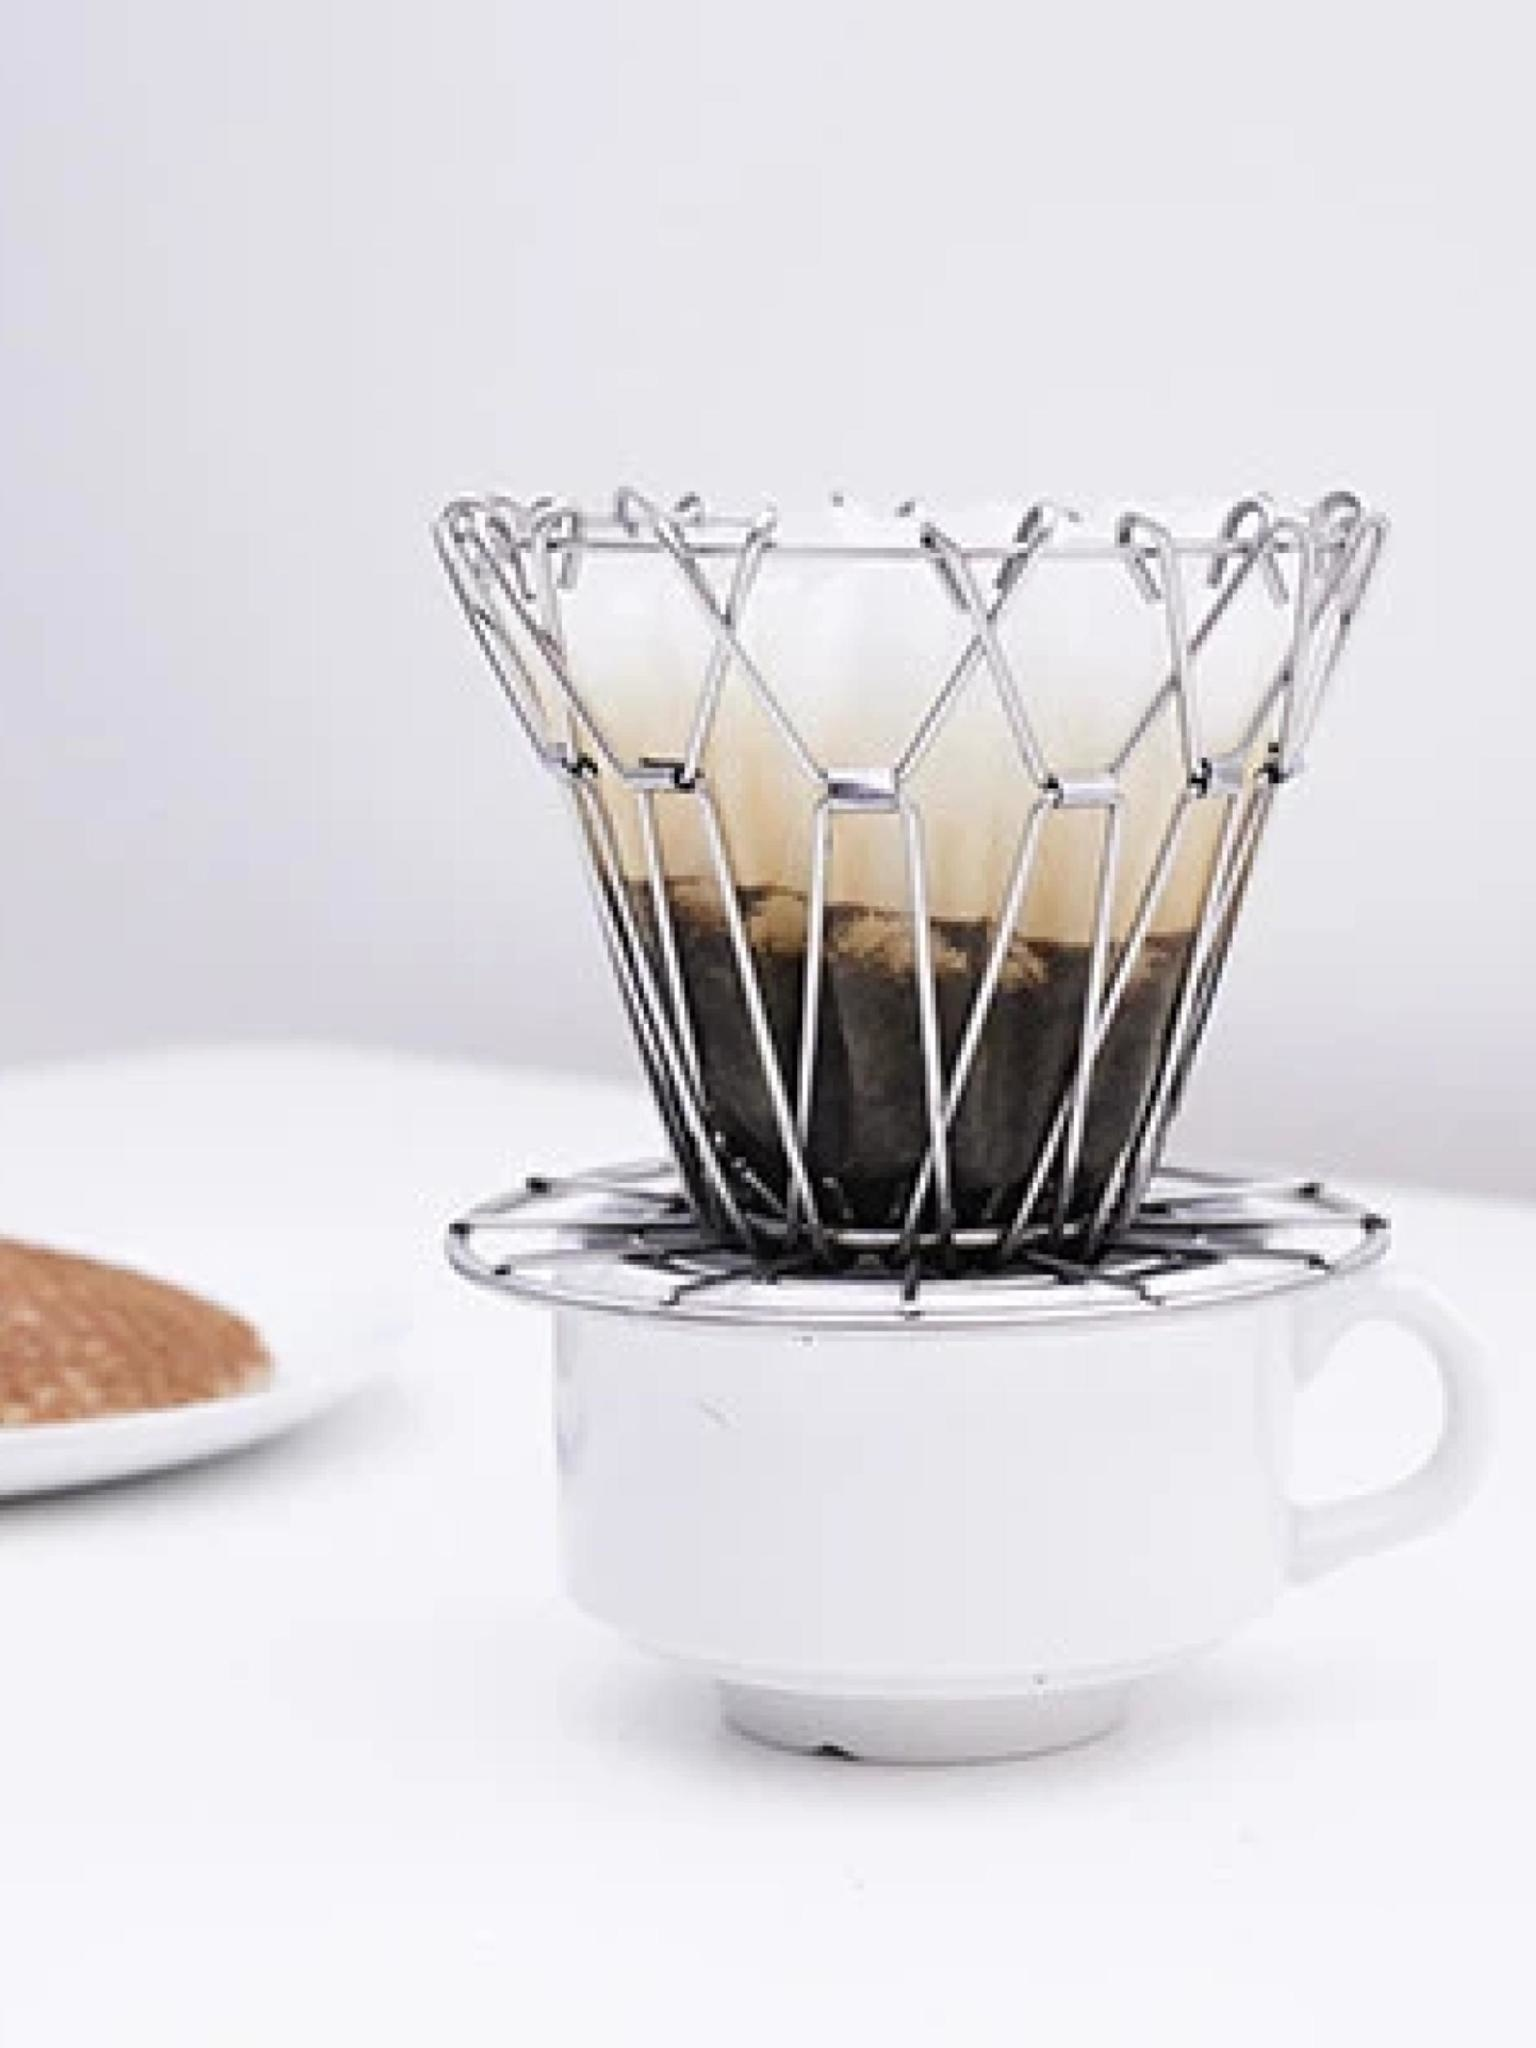 Kikkerland Collapsible Coffee Dripper